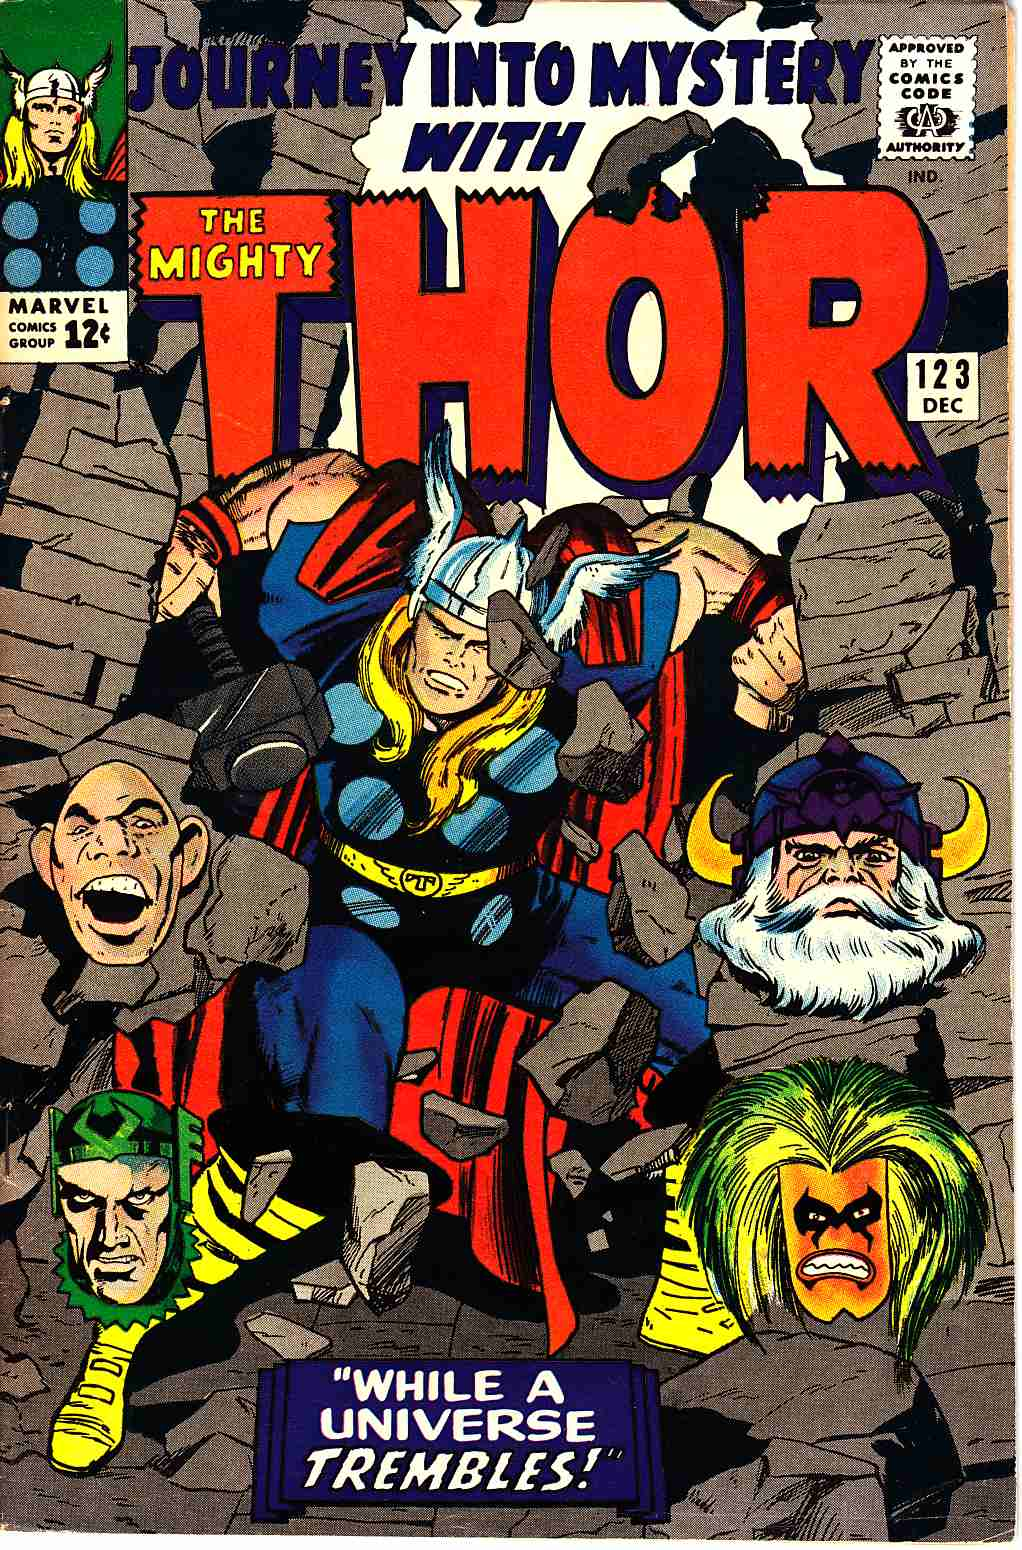 Journey Into Mystery Thor #123 Fine/Very Fine (7.0) [Marvel Comic] THUMBNAIL